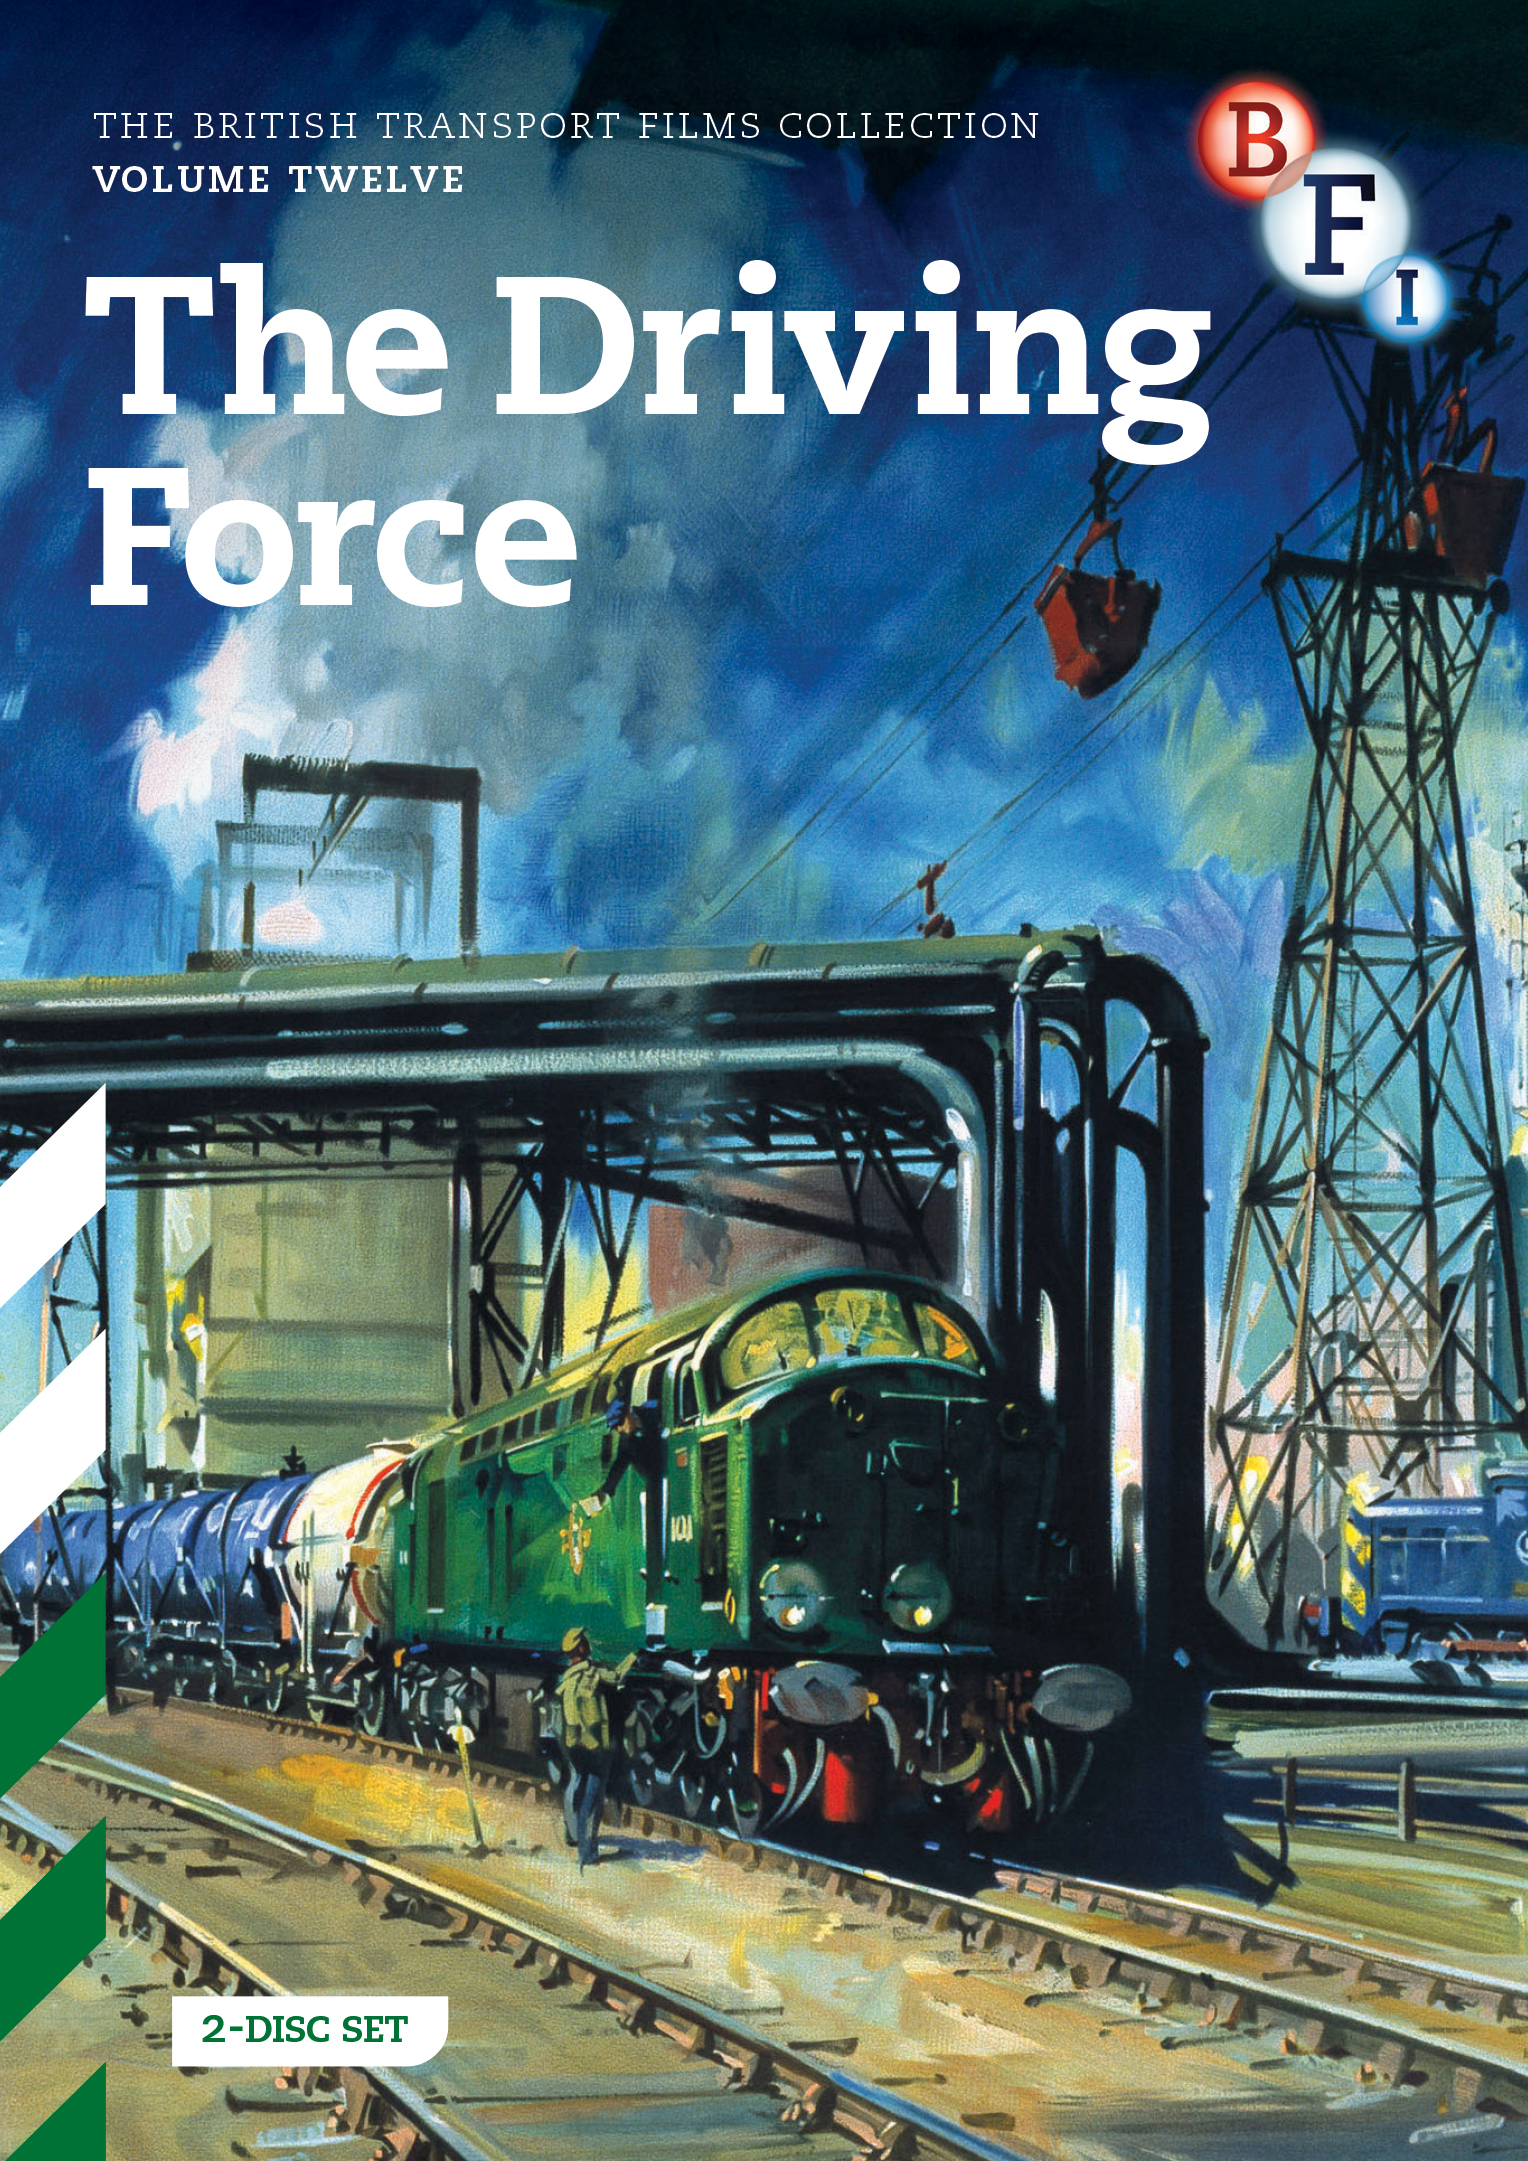 Buy British Transport Films Volume 12: The Driving Force on DVD and Blu Ray